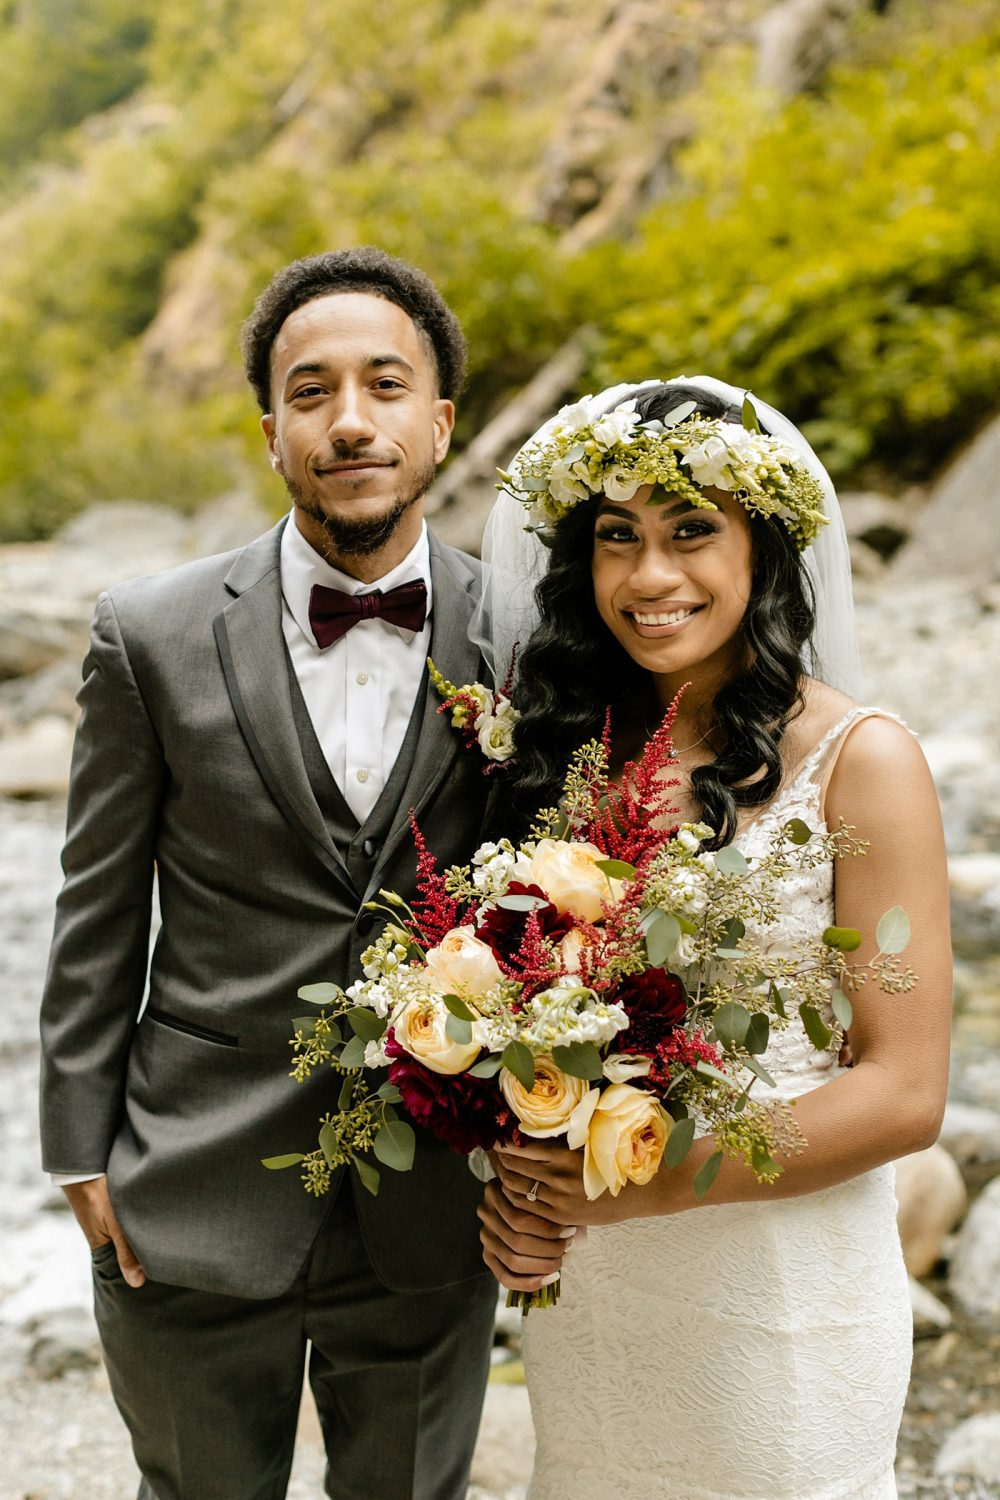 bride and groom together maroon bowtie grey suit